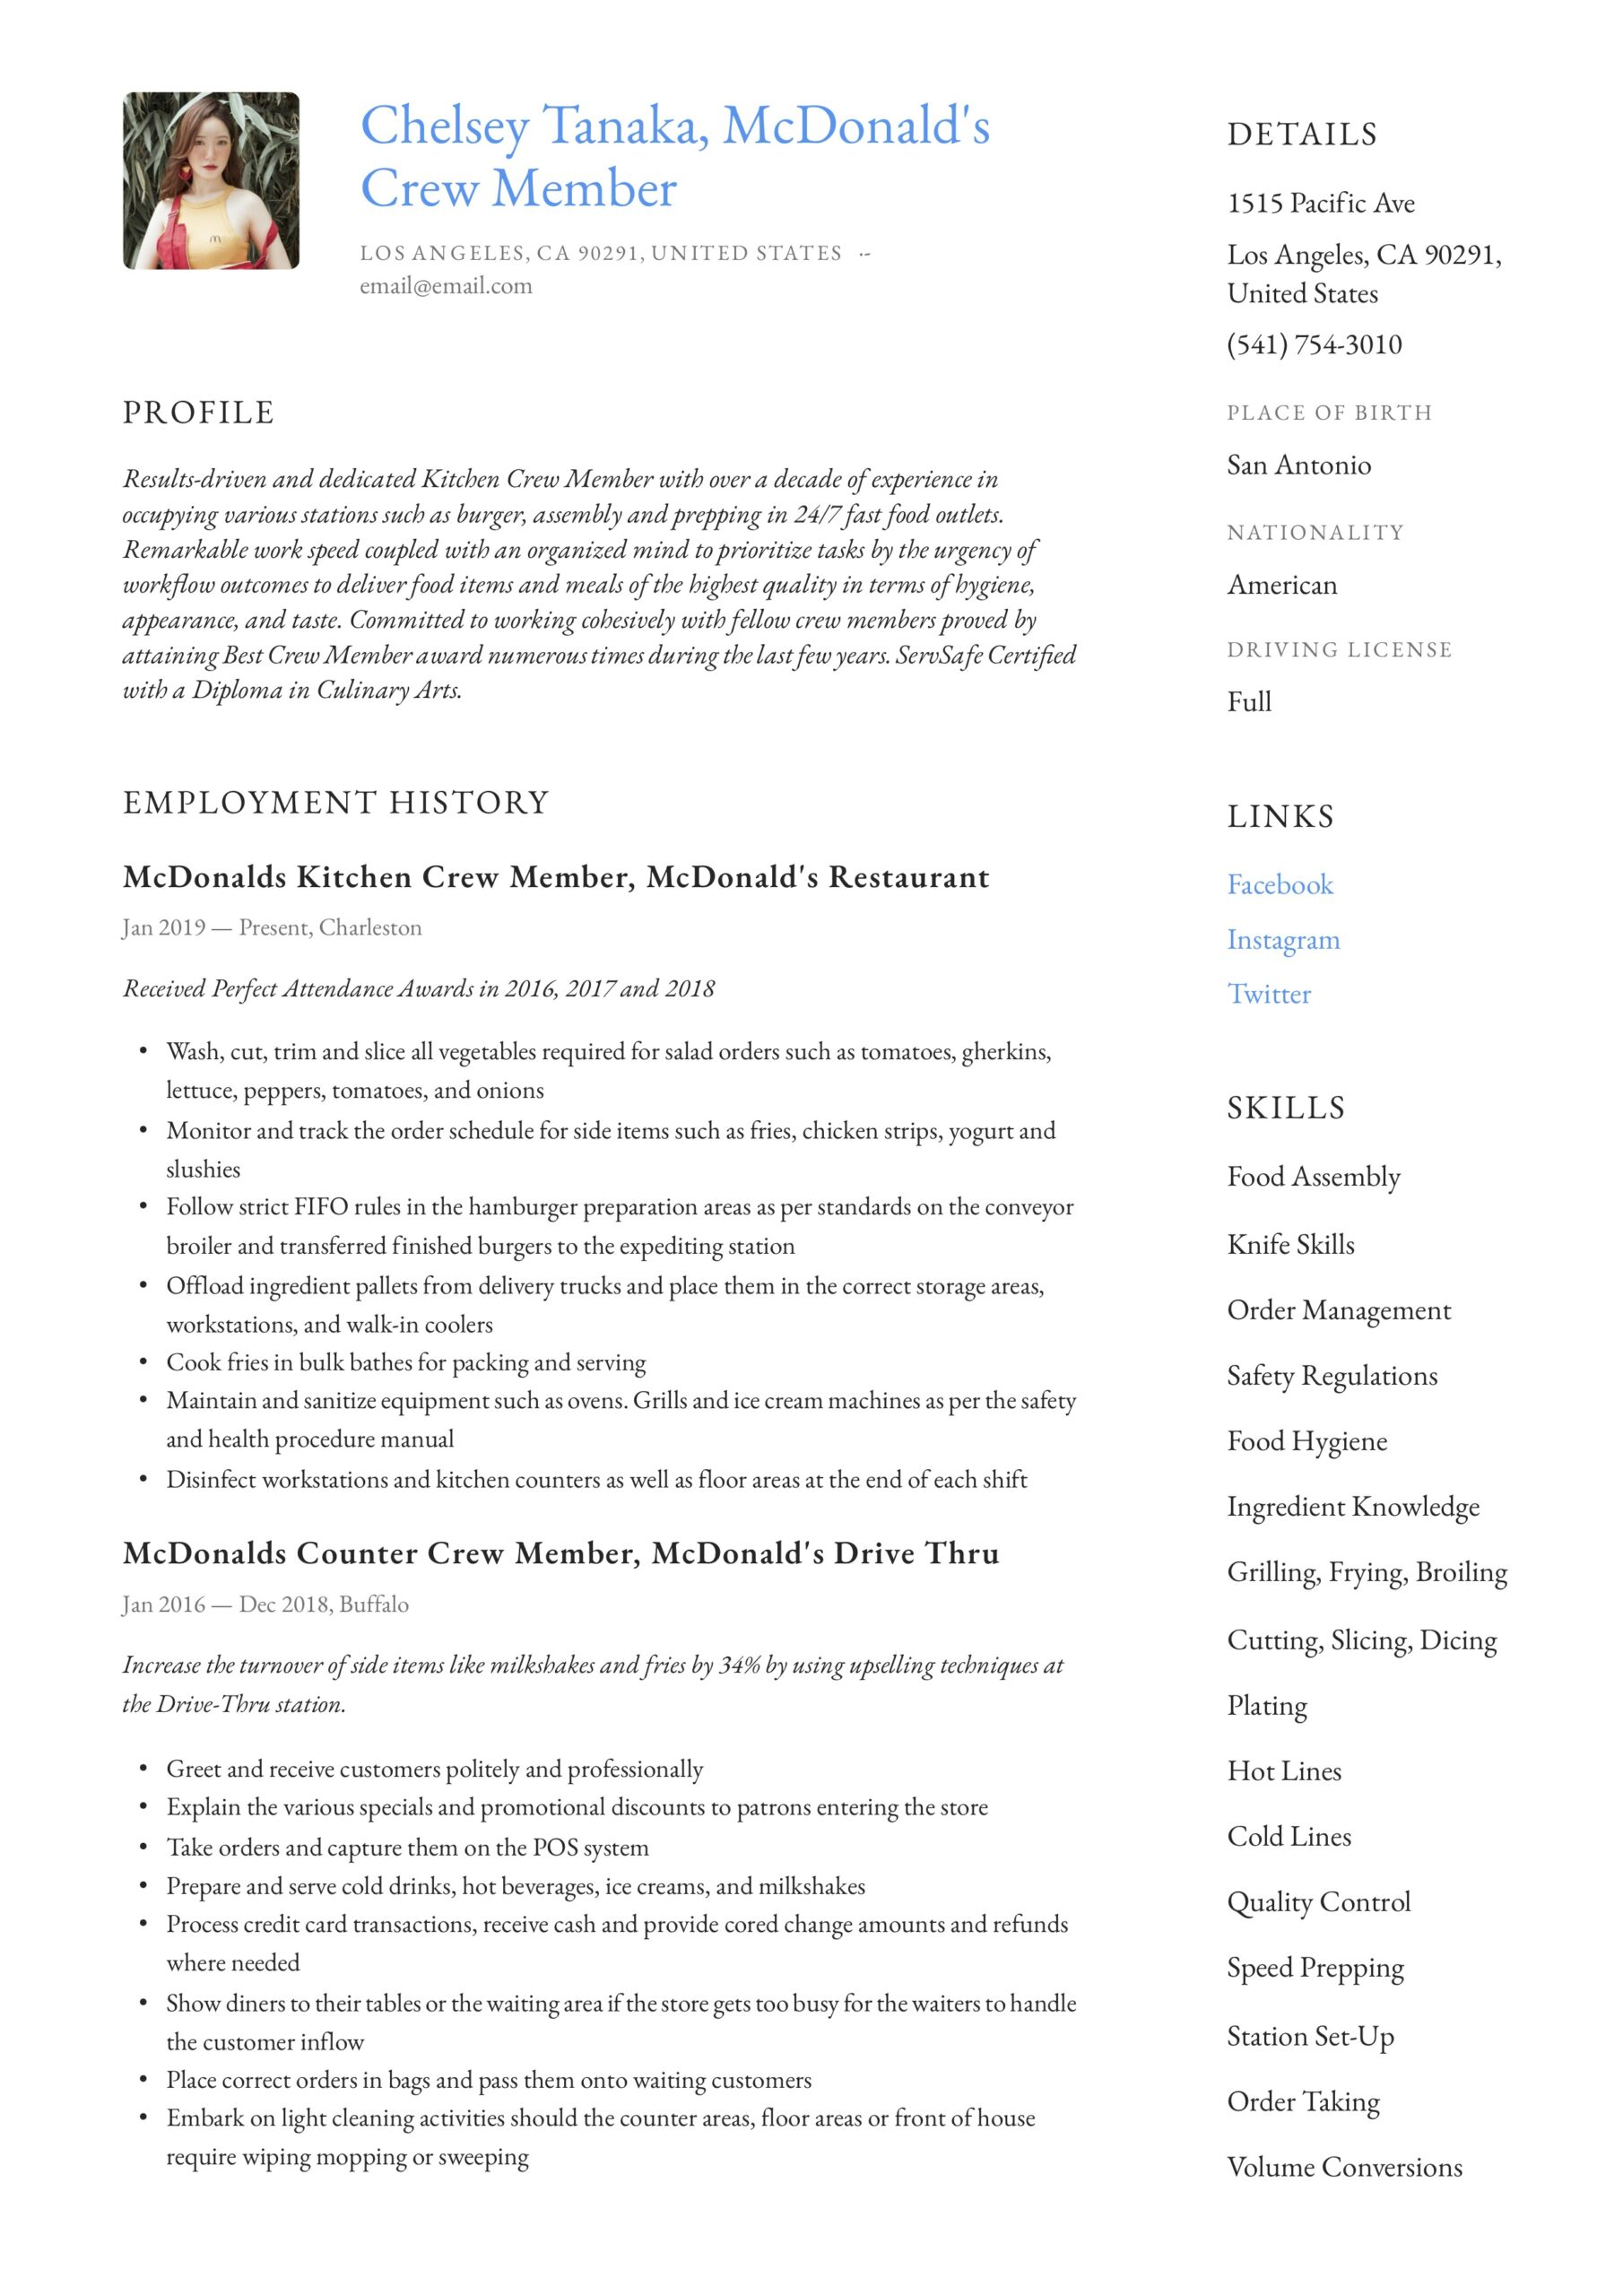 mcdonalds crew member resume writing guide examples canva for fresher payday loan manual Resume Mcdonalds Crew Member Resume